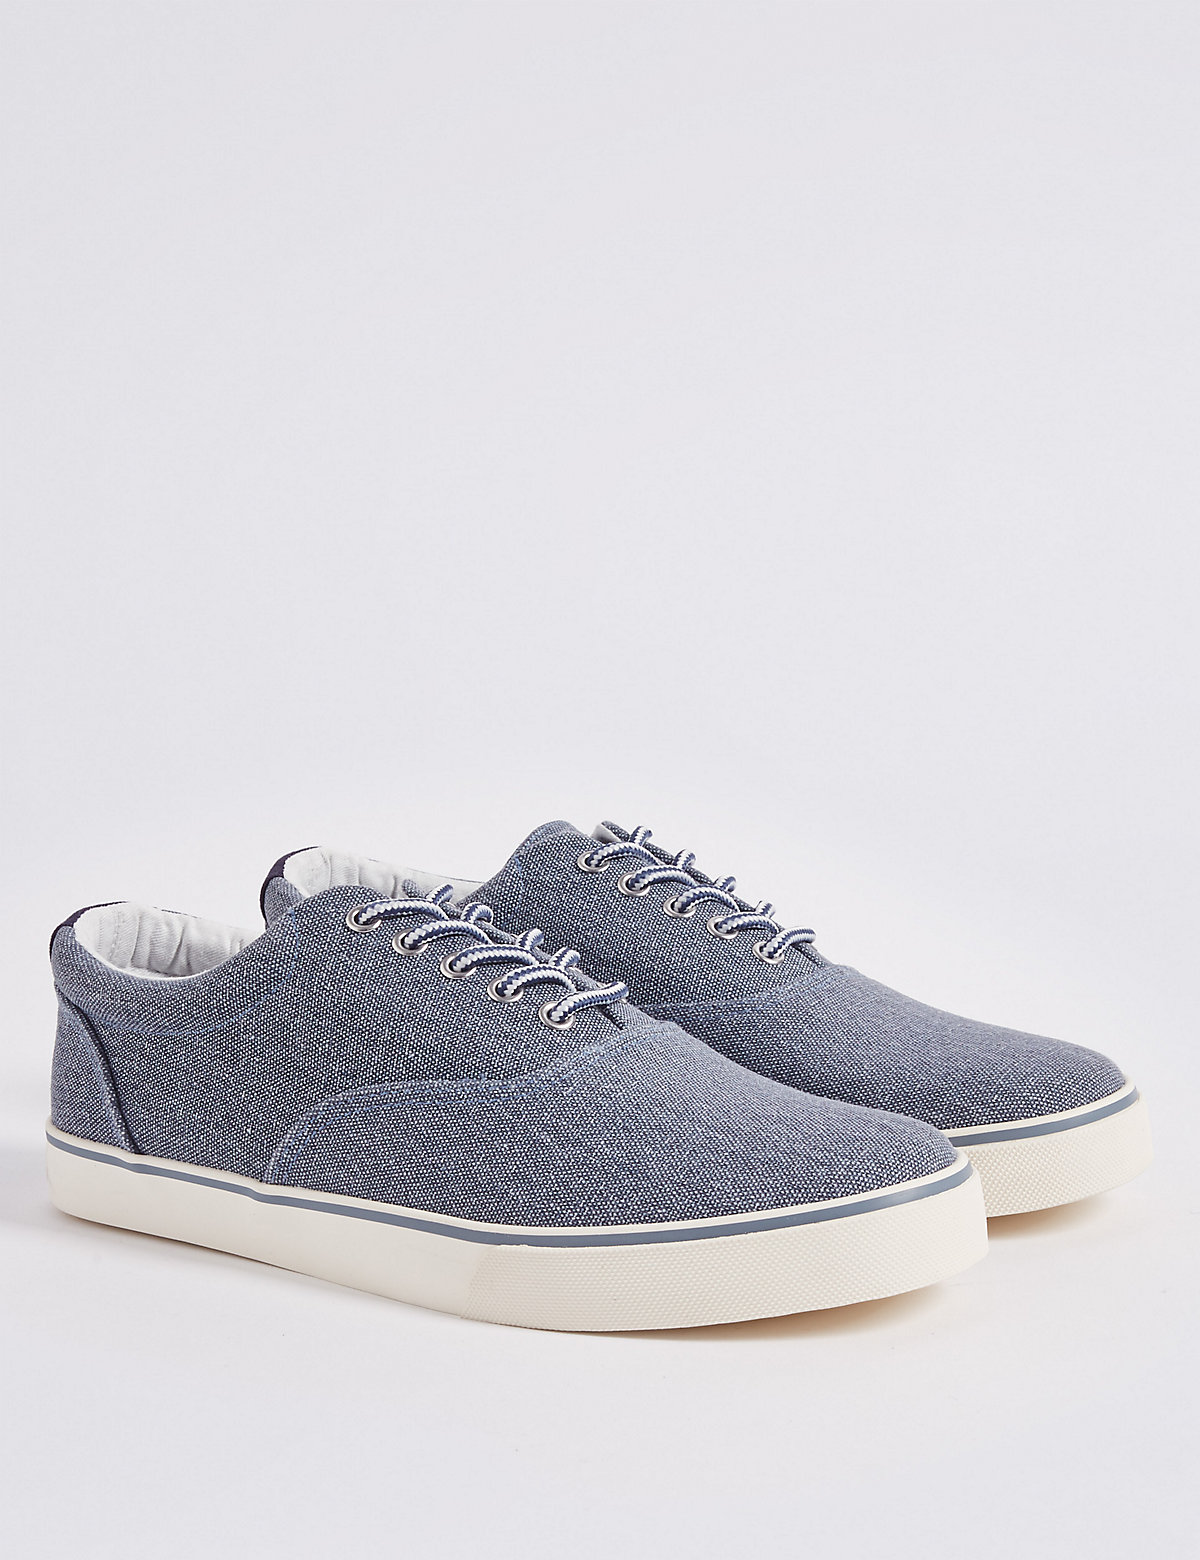 Marks & Spencer Chambray Canvas Lace-up Trainers